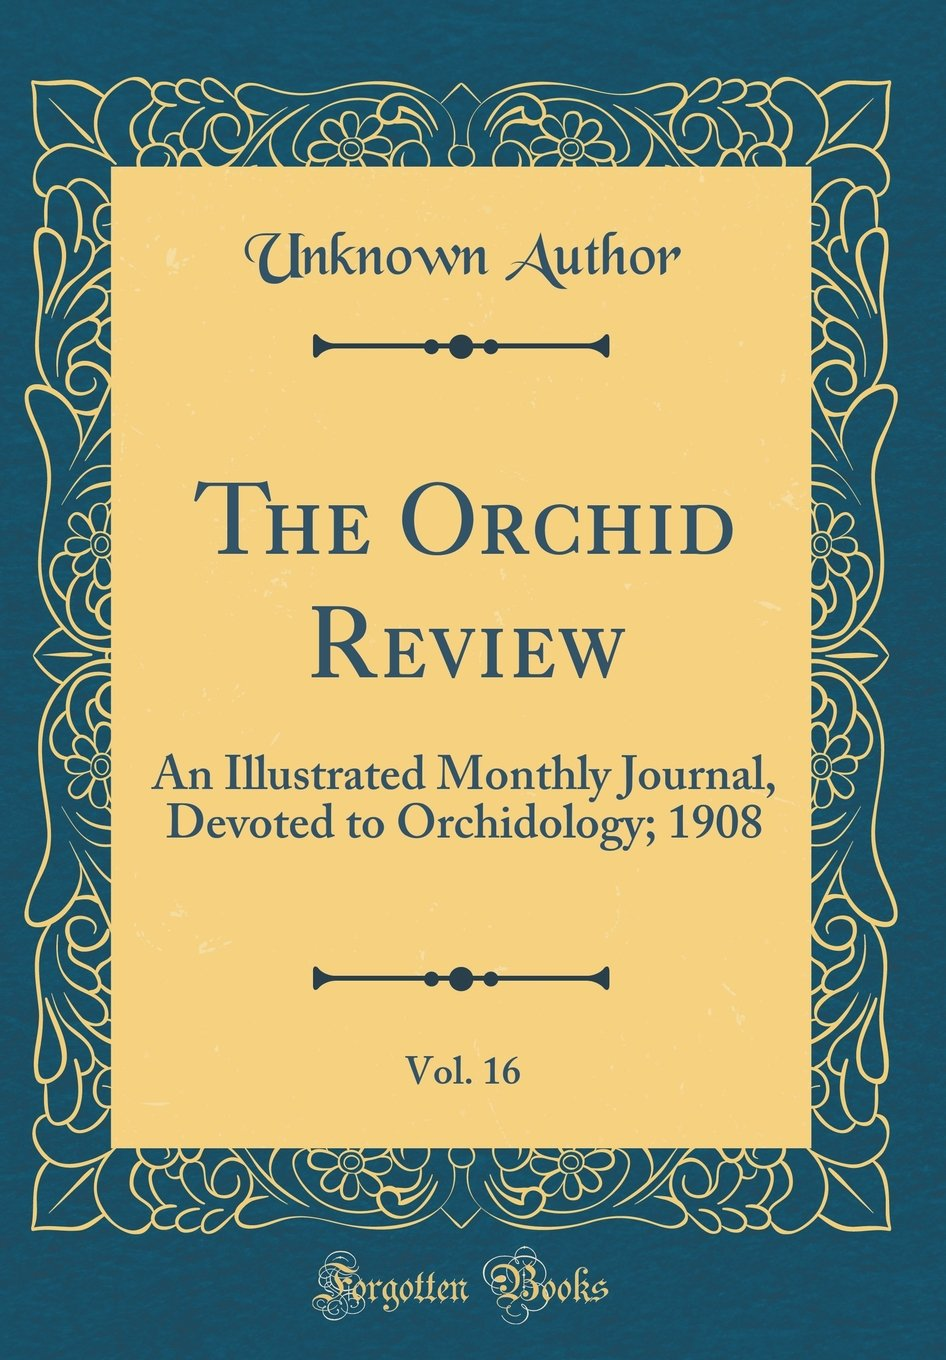 The Orchid Review, Vol. 16: An Illustrated Monthly Journal, Devoted to Orchidology; 1908 (Classic Reprint) ebook